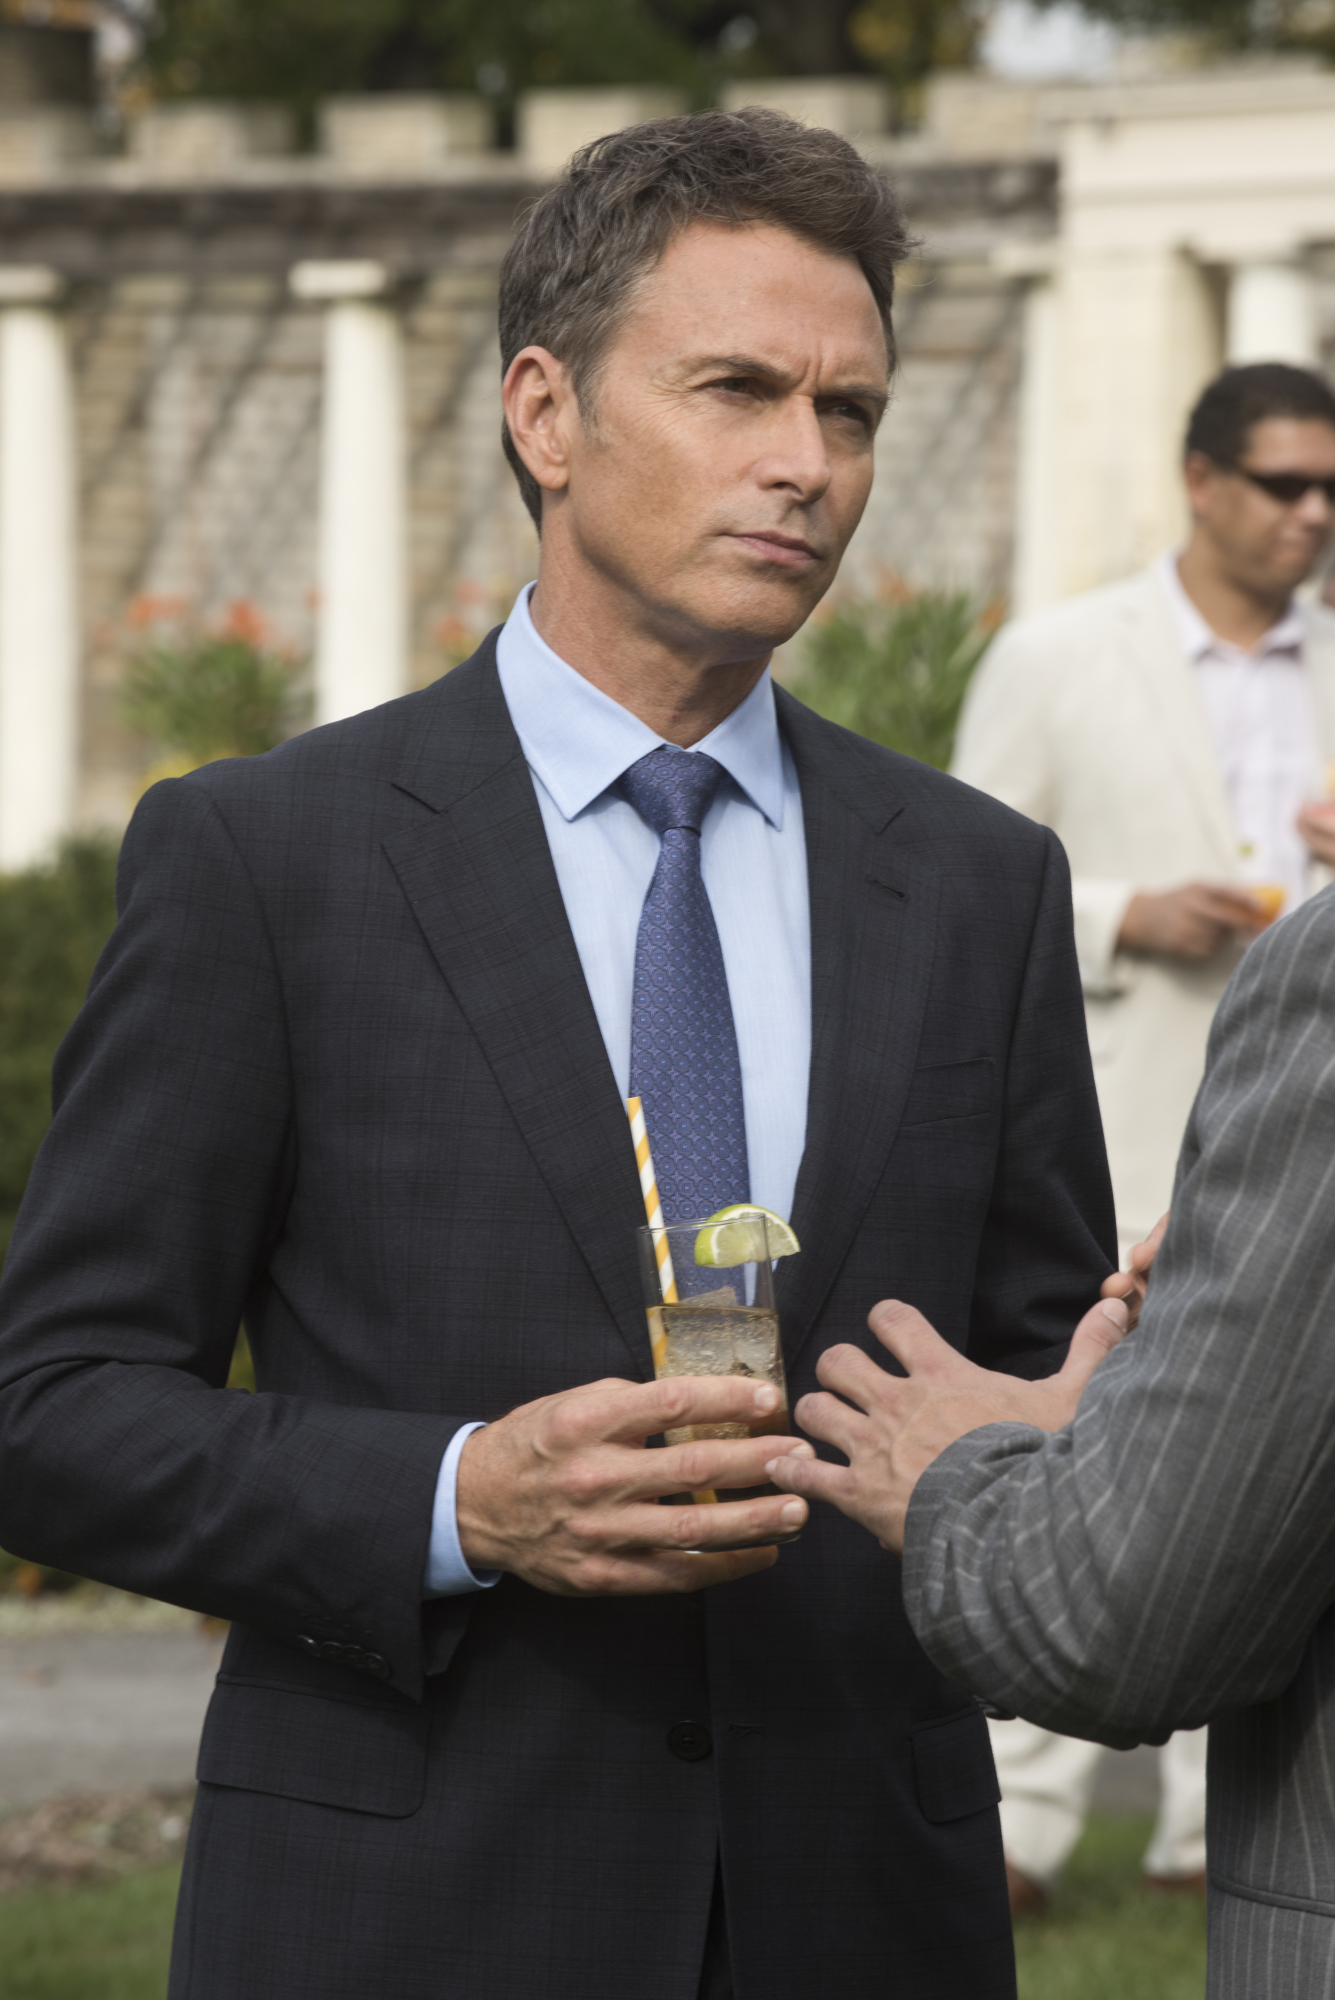 44. Tim Daly made his debut in Barry Levinson's